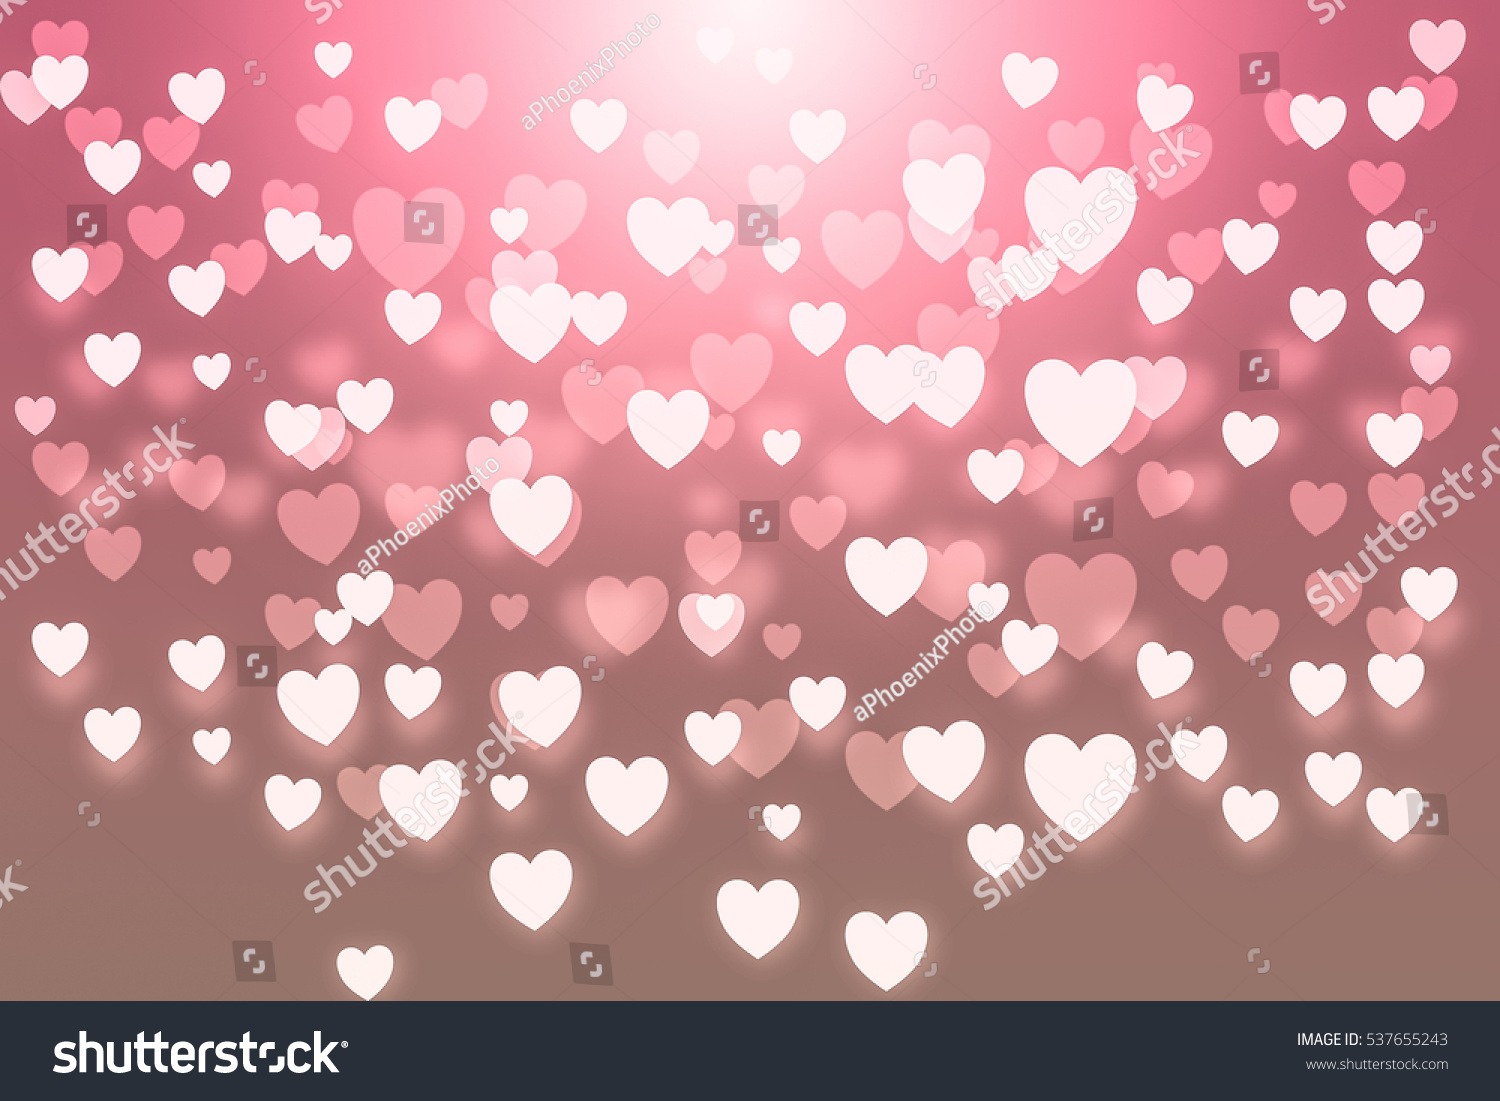 stock photo valentine background beautiful heart love card vintage wallpaper pink background 537655243